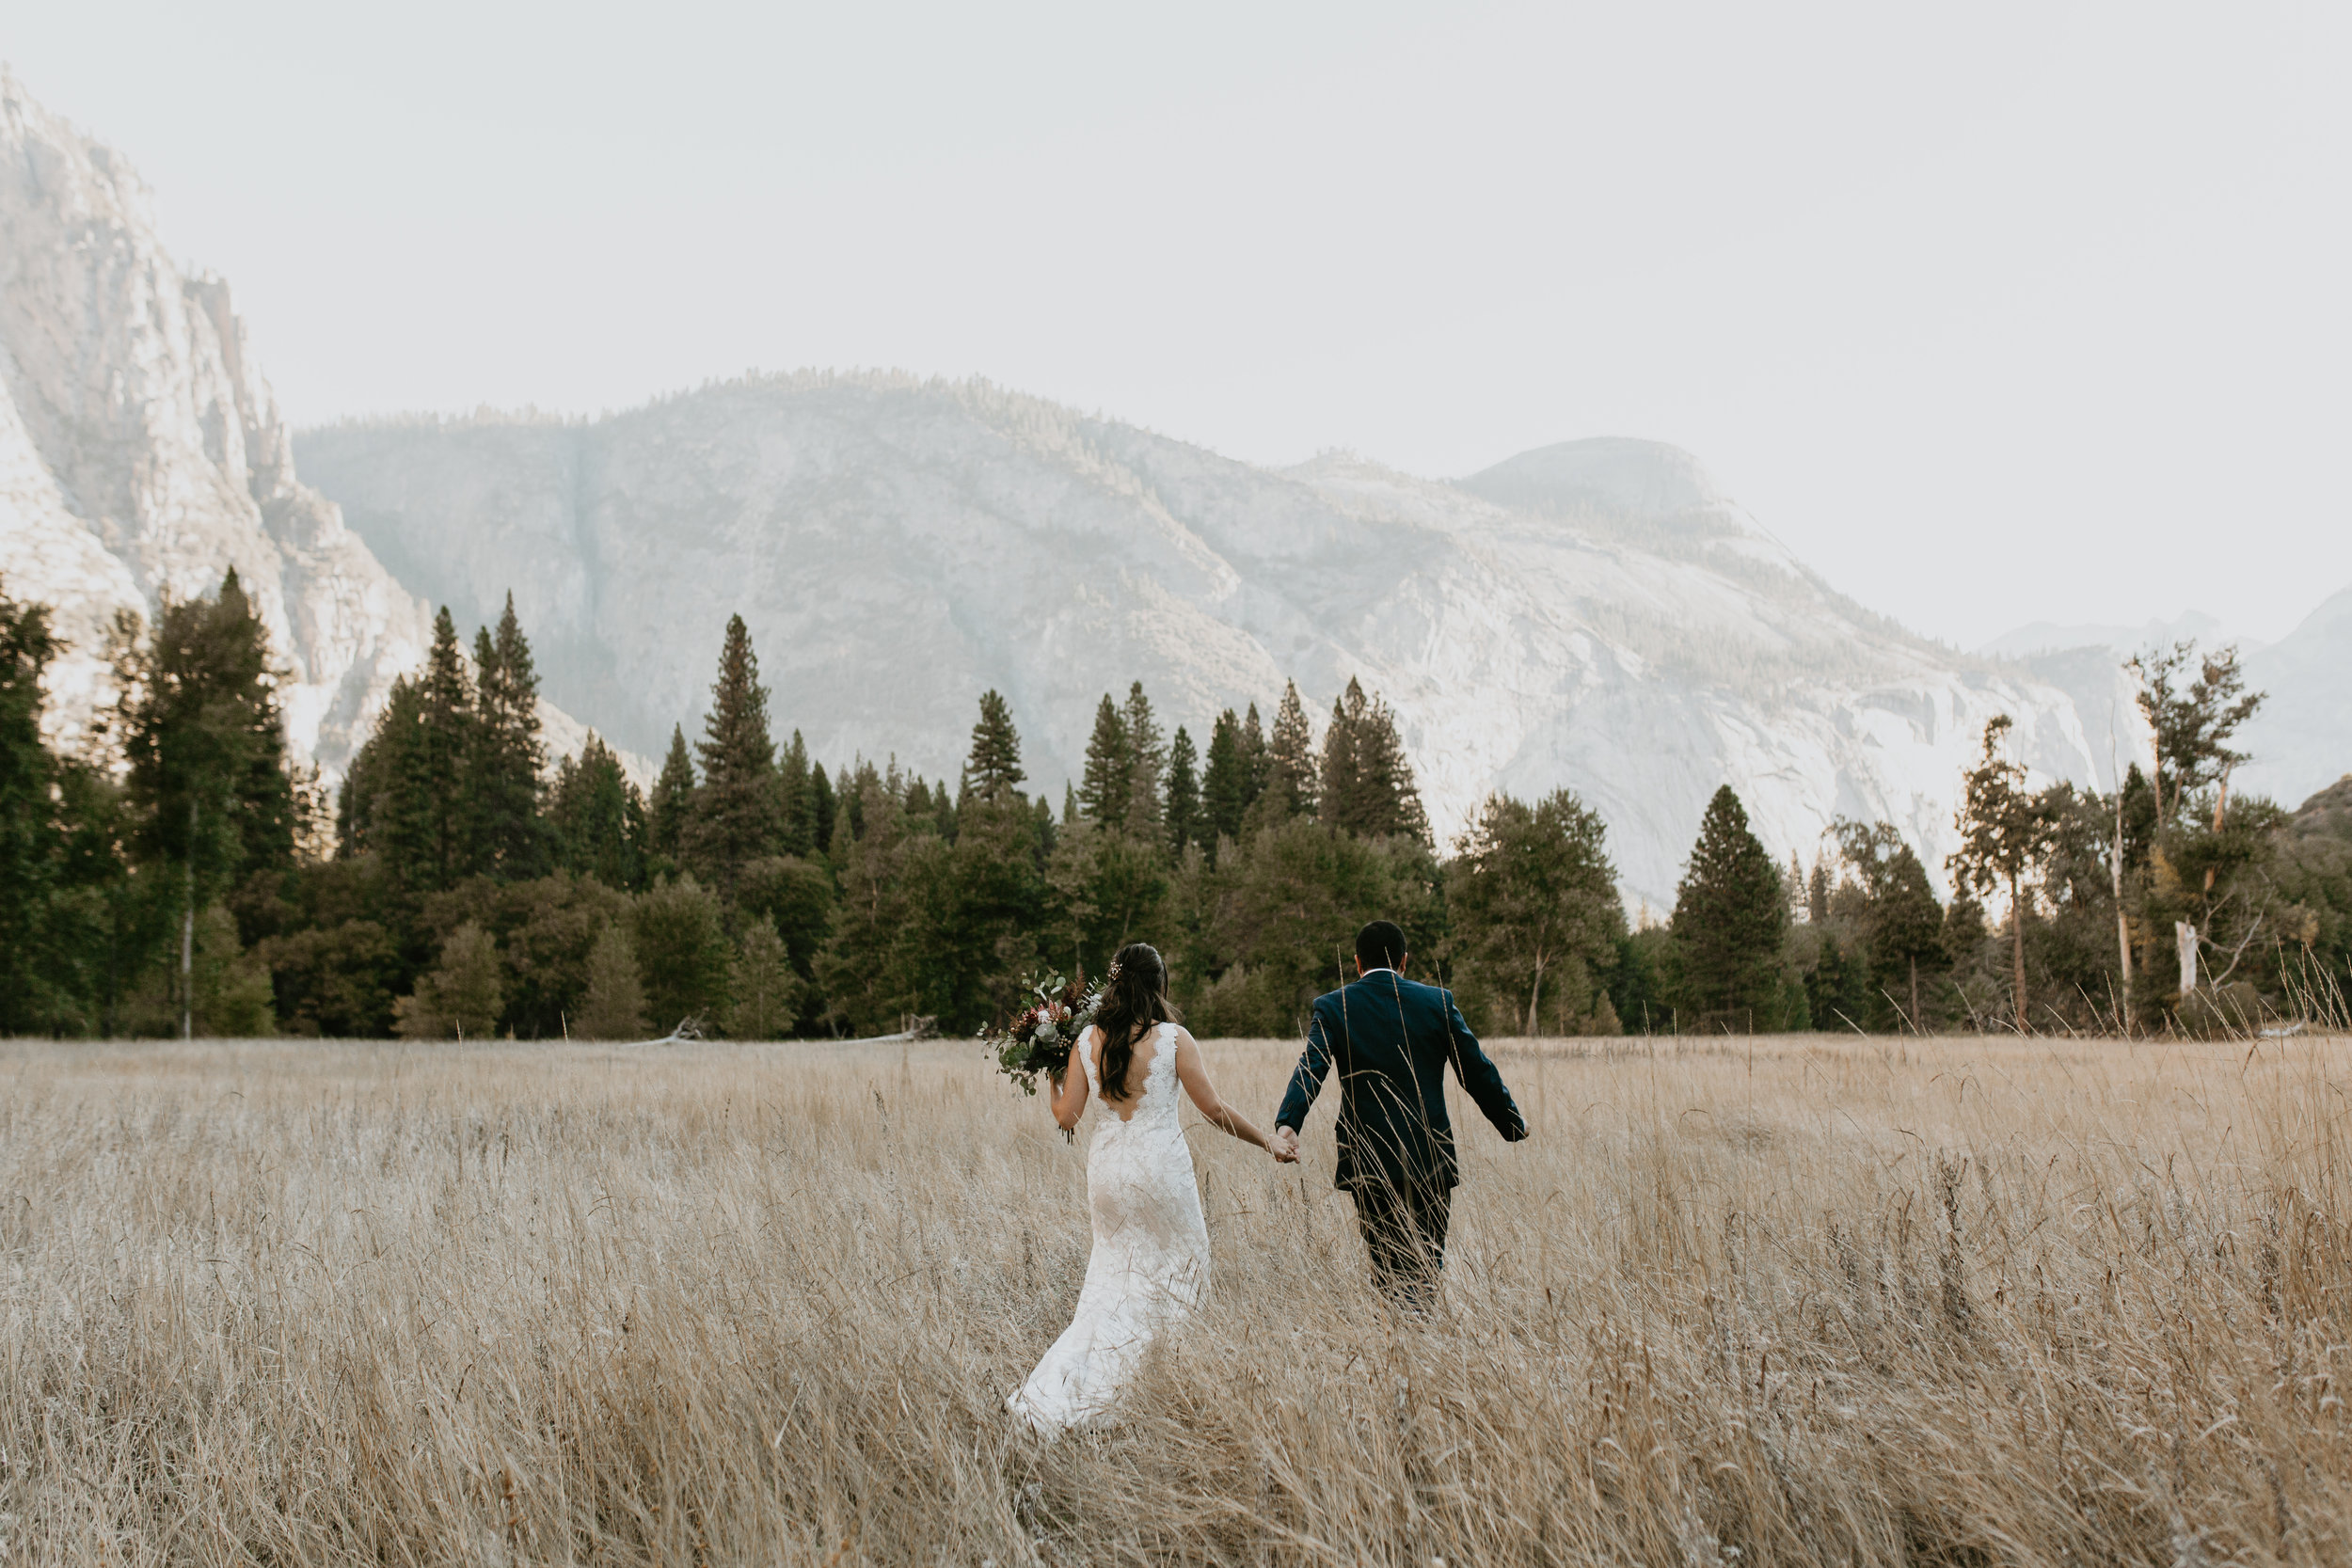 nicole-daacke-photography-intimate-elopement-wedding-yosemite-national-park-california-taft-point-sunset-photos-yosemite-valley-tunnel-view-first-look-sunrise-golden-granite-hiking-adventure-wedding-adventurous-elopement-photographer-12.jpg